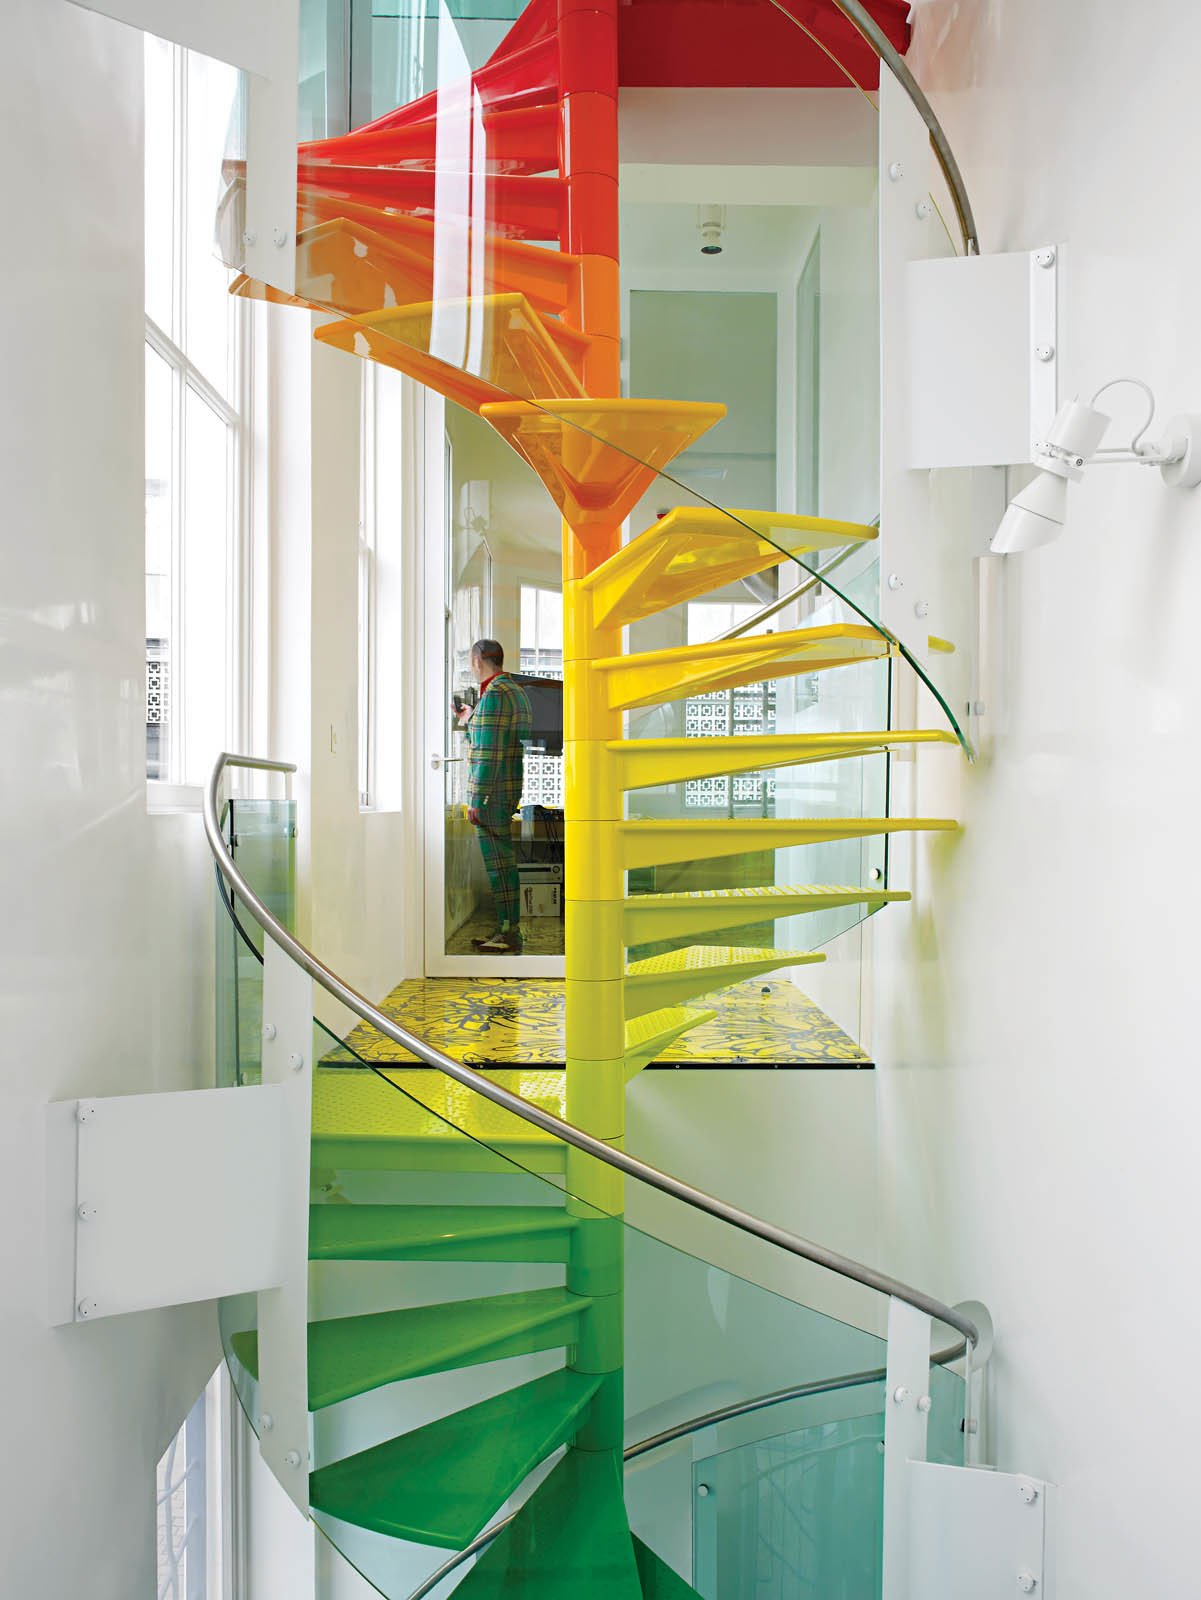 Staircase, Metal, and Metal Ab Rogers dons a bold suit that suits the spirit of the accompanying decor he designed.  Best Staircase Photos from A Family Goes Somewhere Over the Rainbow